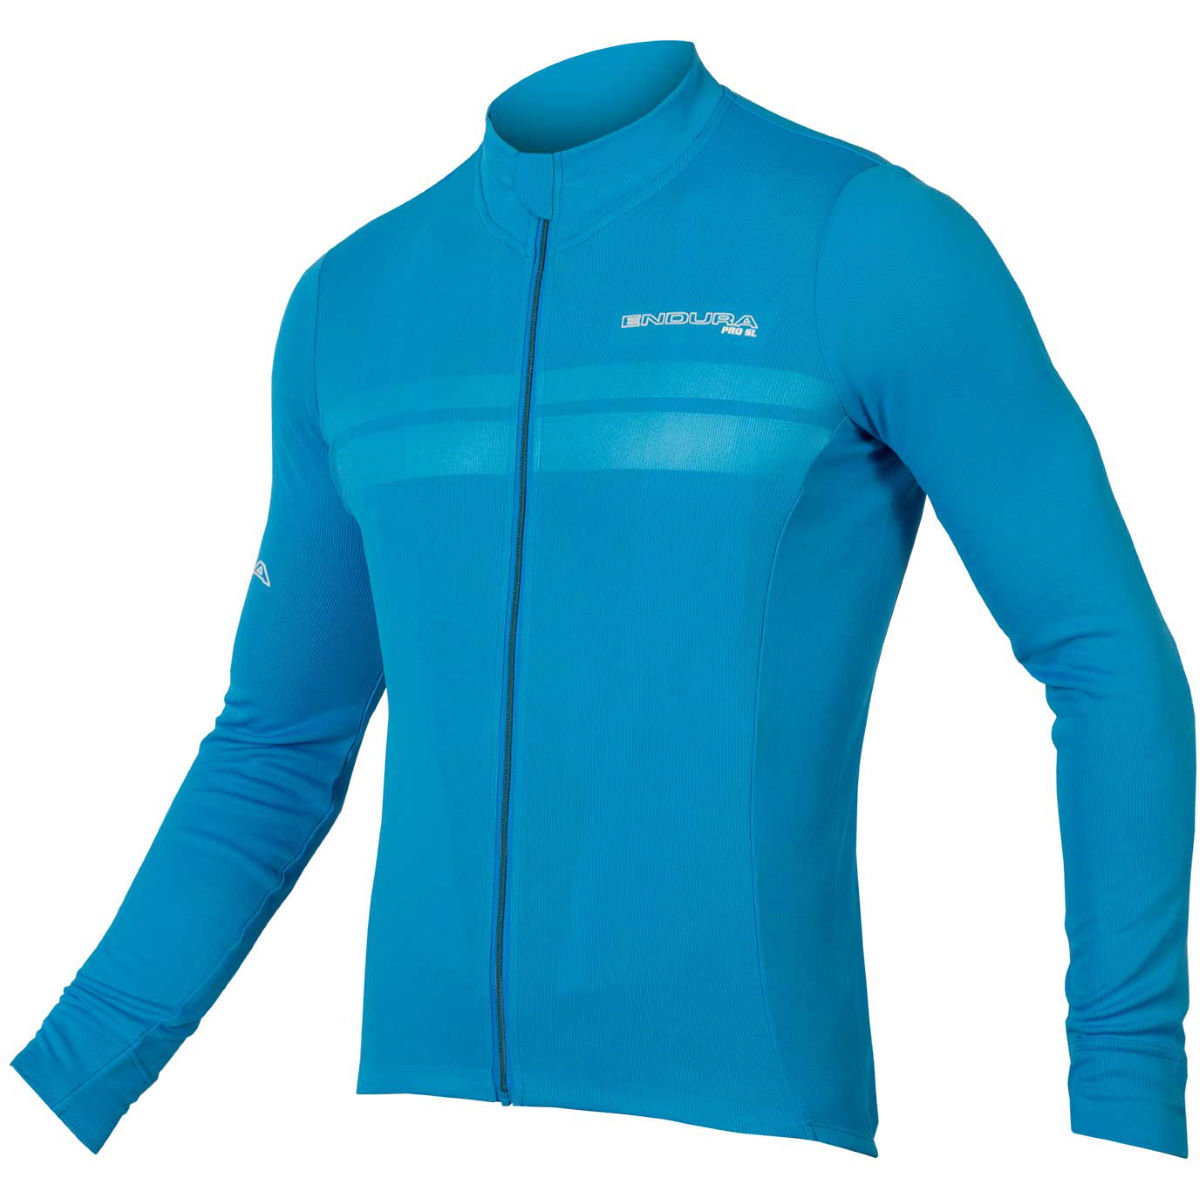 Endura Pro SL Long Sleeve Jersey Jerseys  cc60b78a6